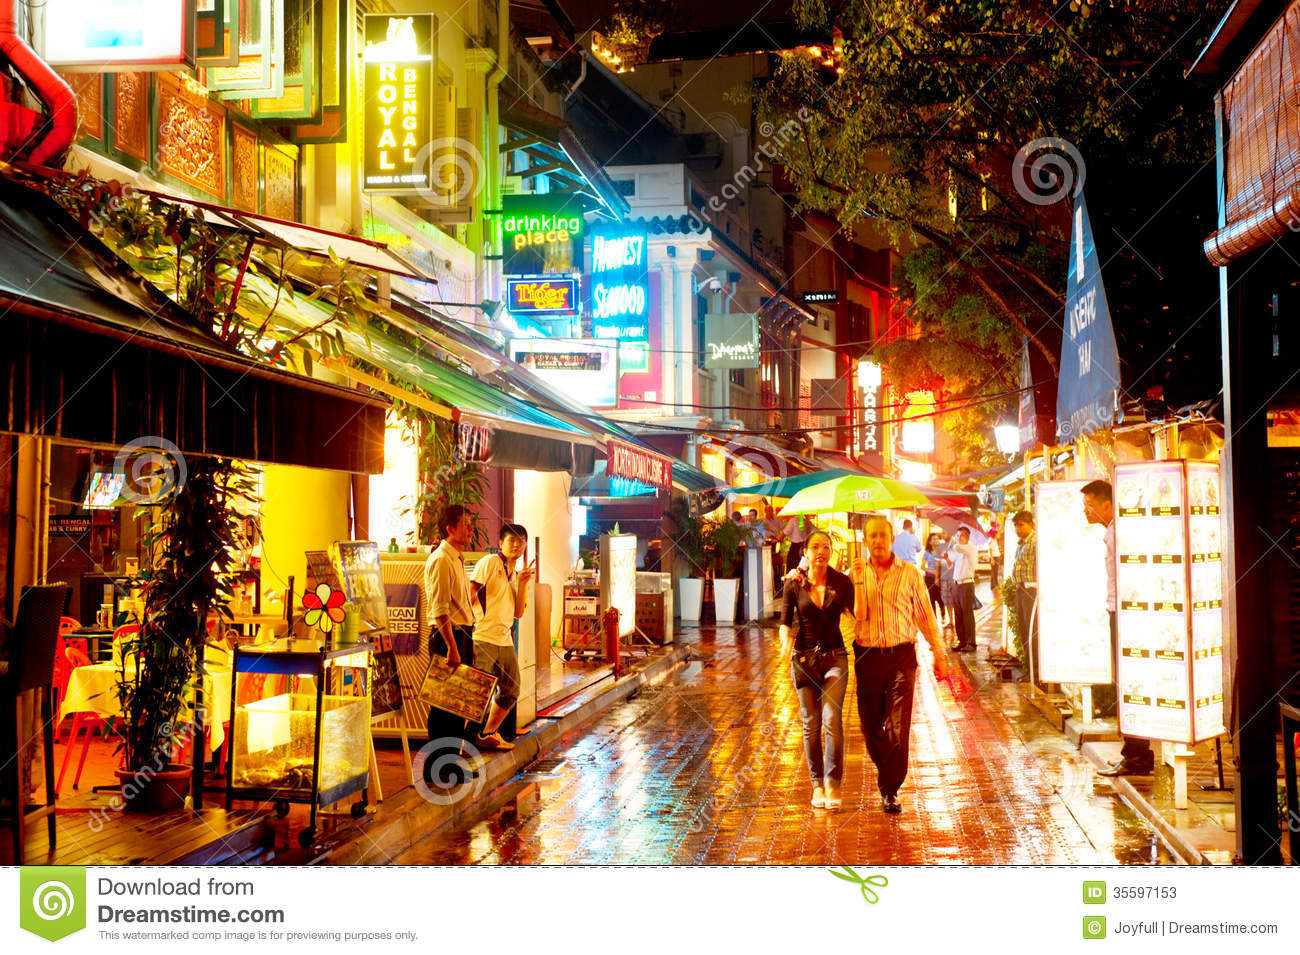 Boat Quay Nightlife Editorial Stock Photo Image 35597153 : boat quay nightlife singapore republic singapore may street view twilightin singapore most popular dining 35597153 from www.dreamstime.com size 1300 x 955 jpeg 323kB